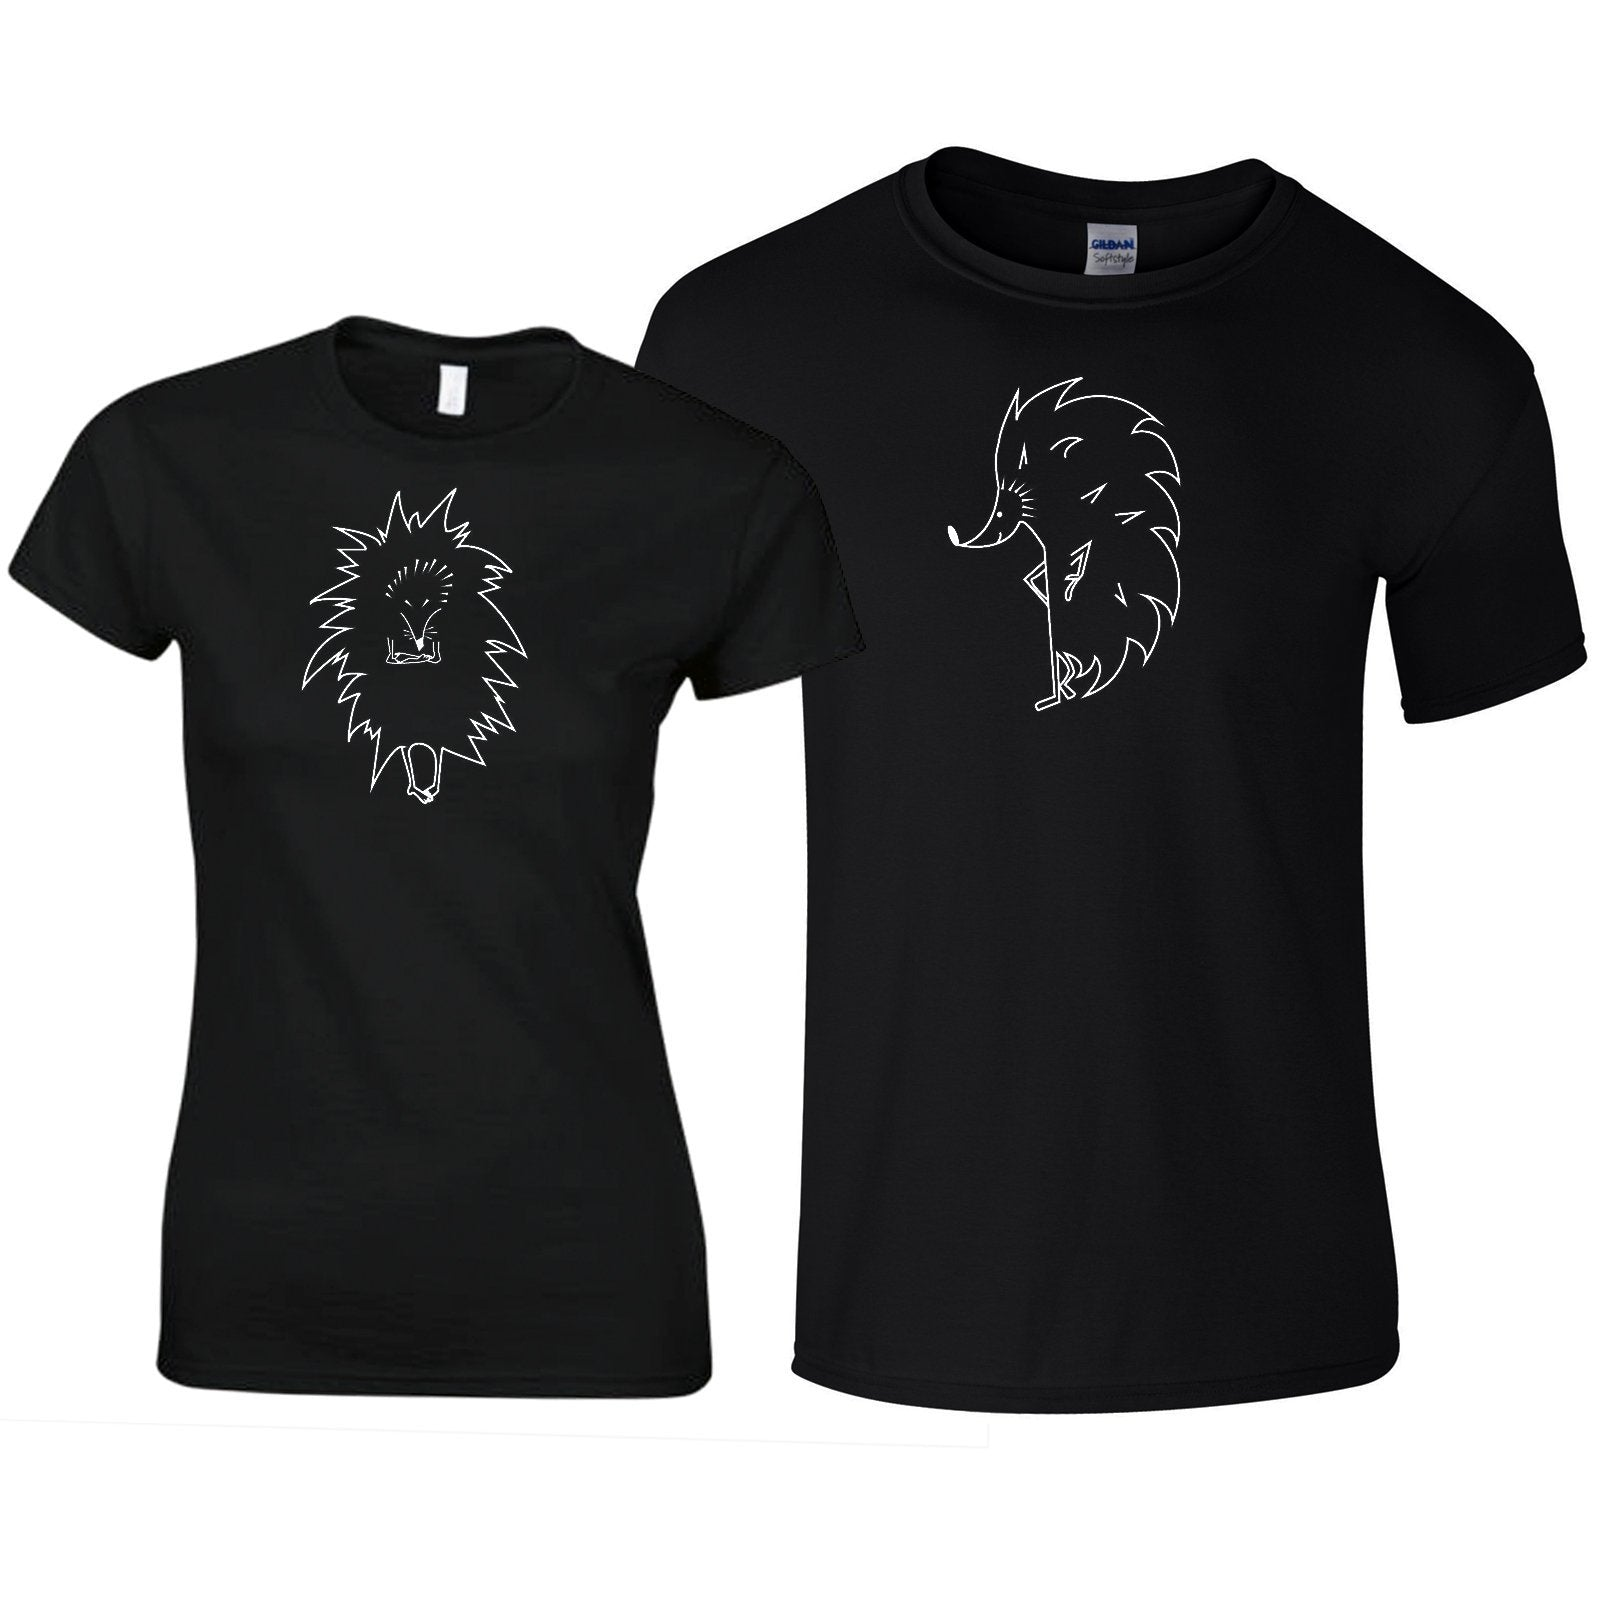 T-shirts - Matching T-shirts, Hedgehogs